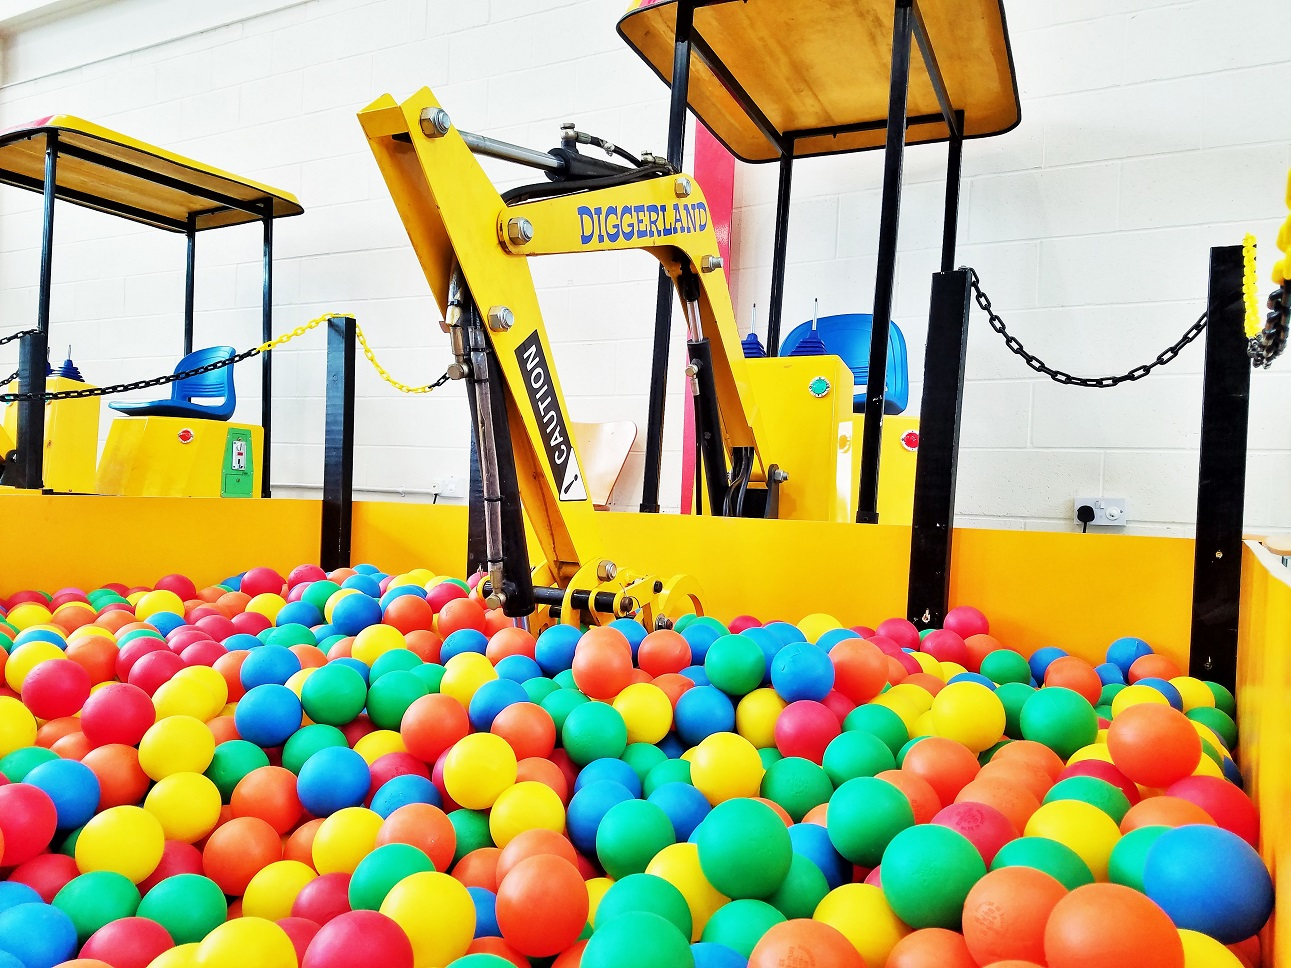 Diggerland in the rain - indoor digger with ball pool